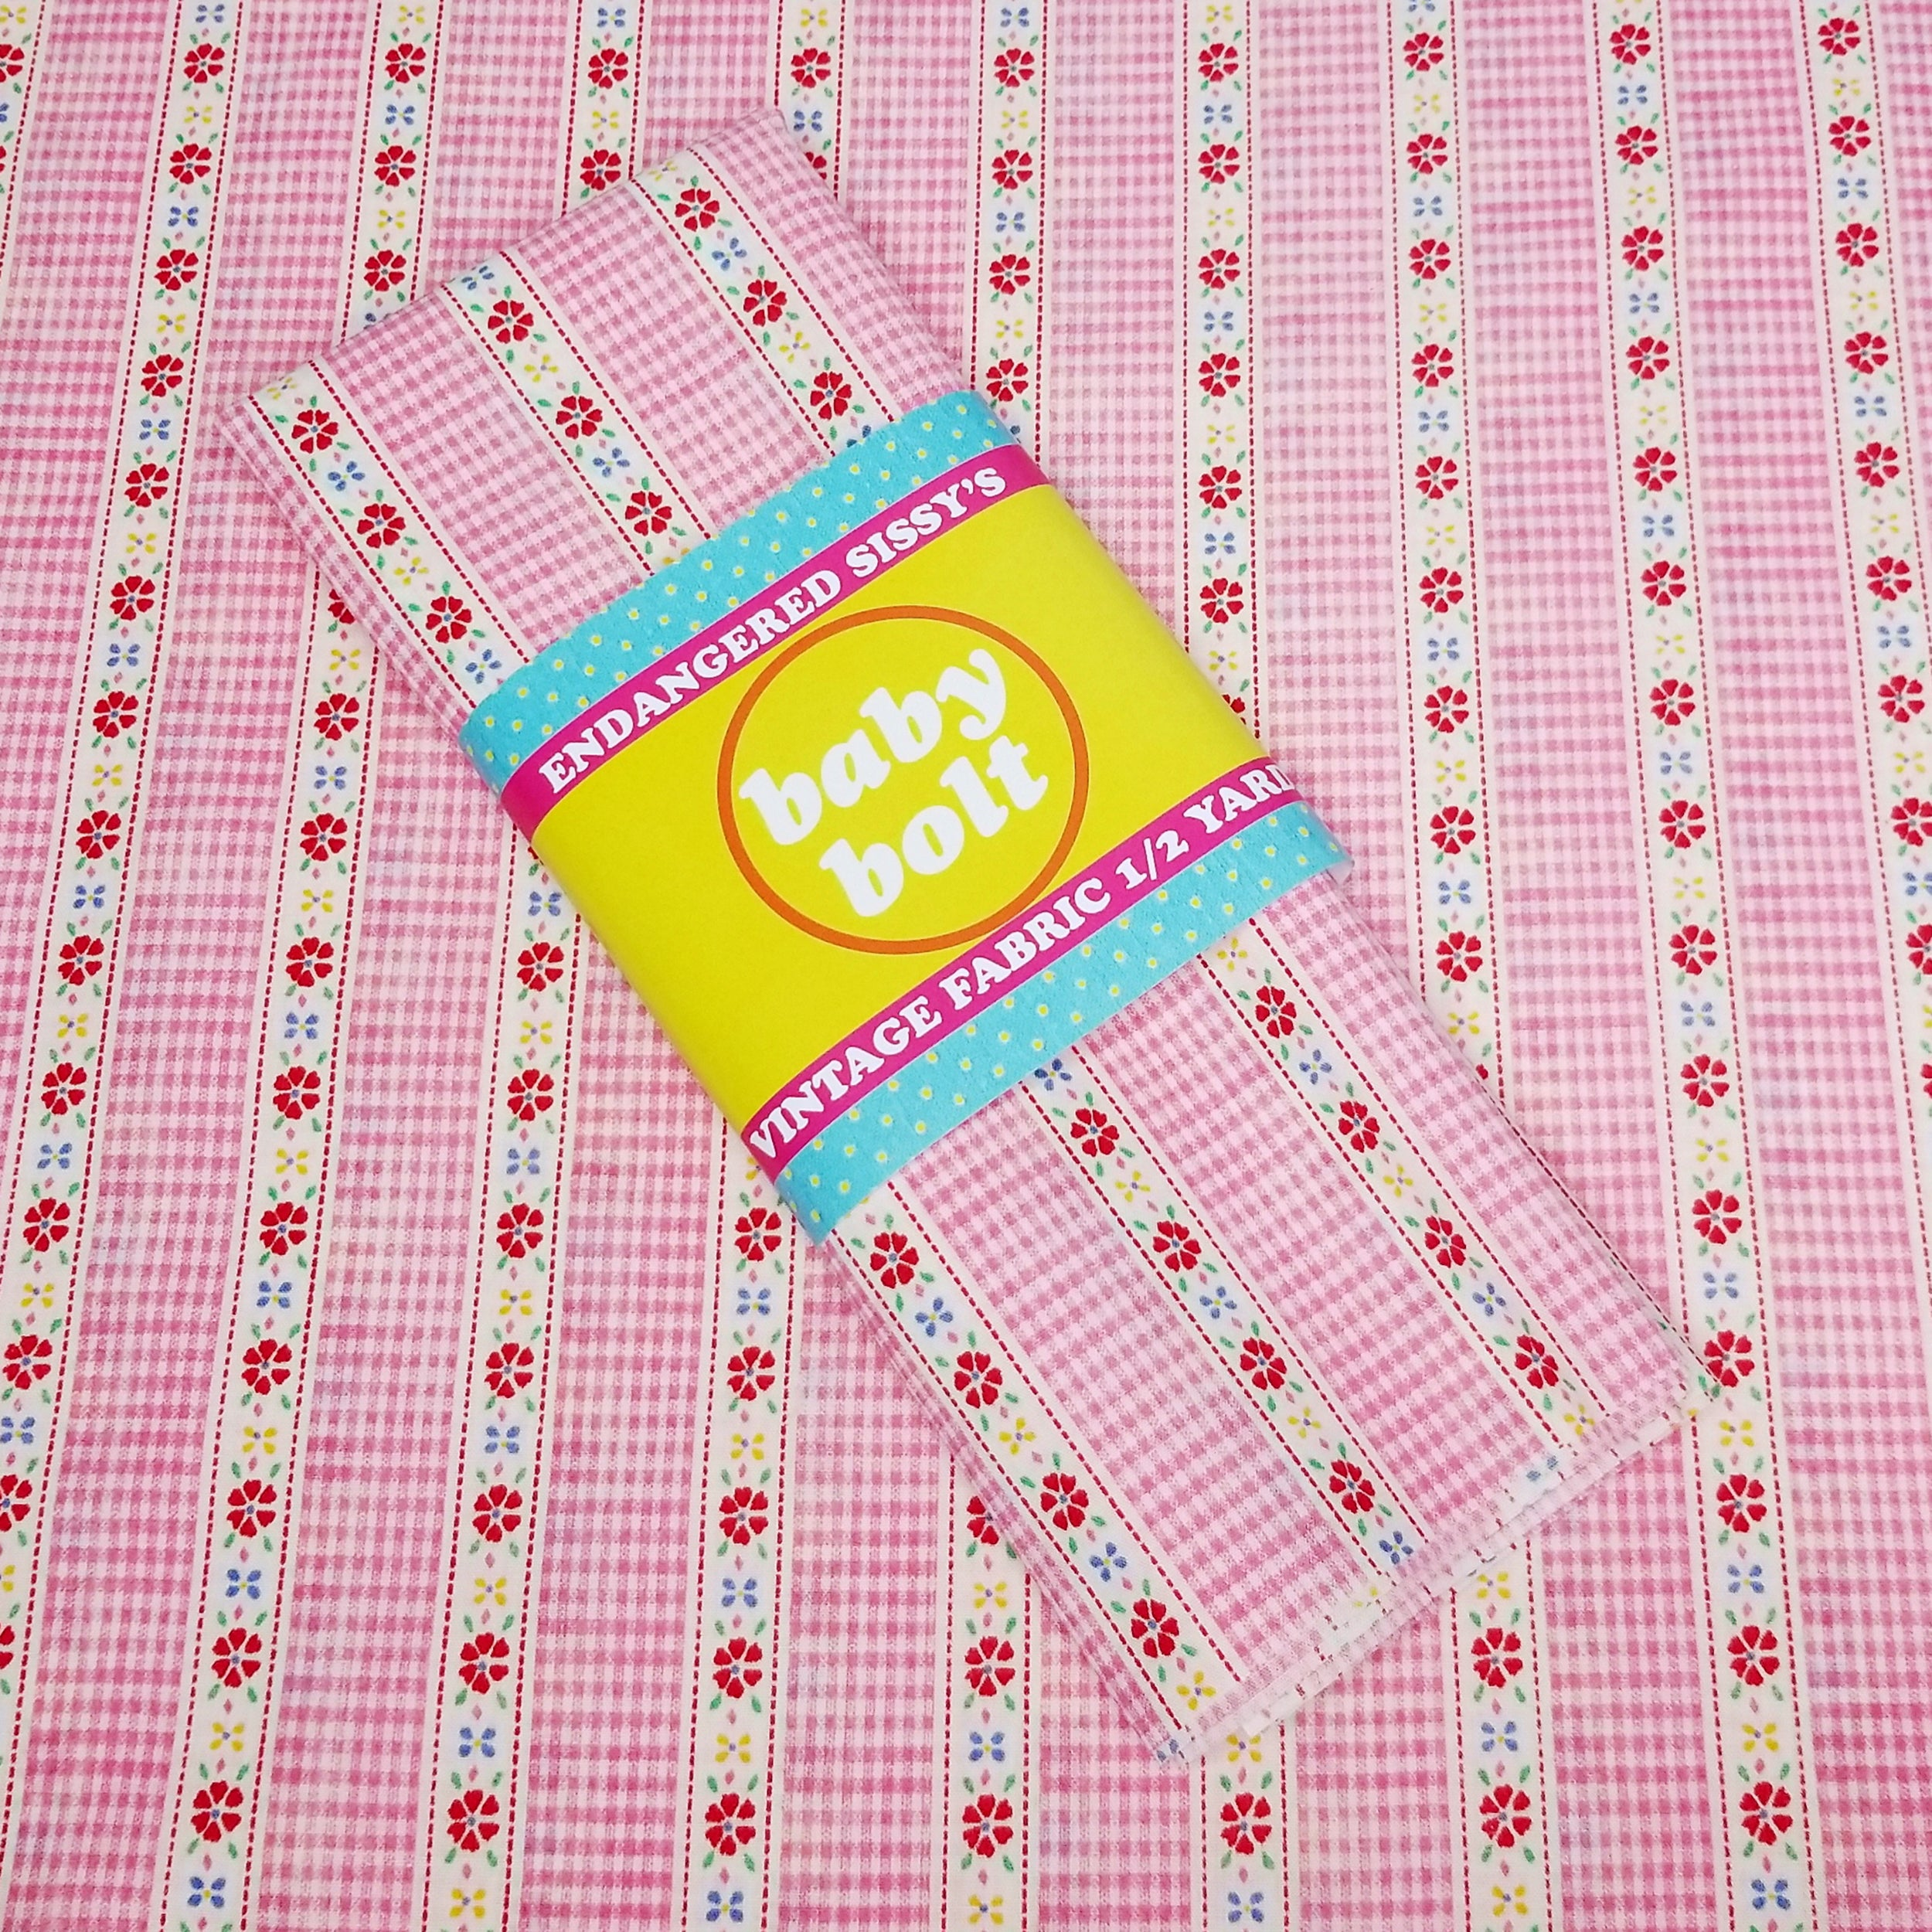 VINTAGE FABRIC BABY BOLT HALF-YARD -  SIXTIES' GINGHAM & FLOWER STRIPE RIBBON PRINT IN PINK, WHITE & PRETTY PRIMARIES